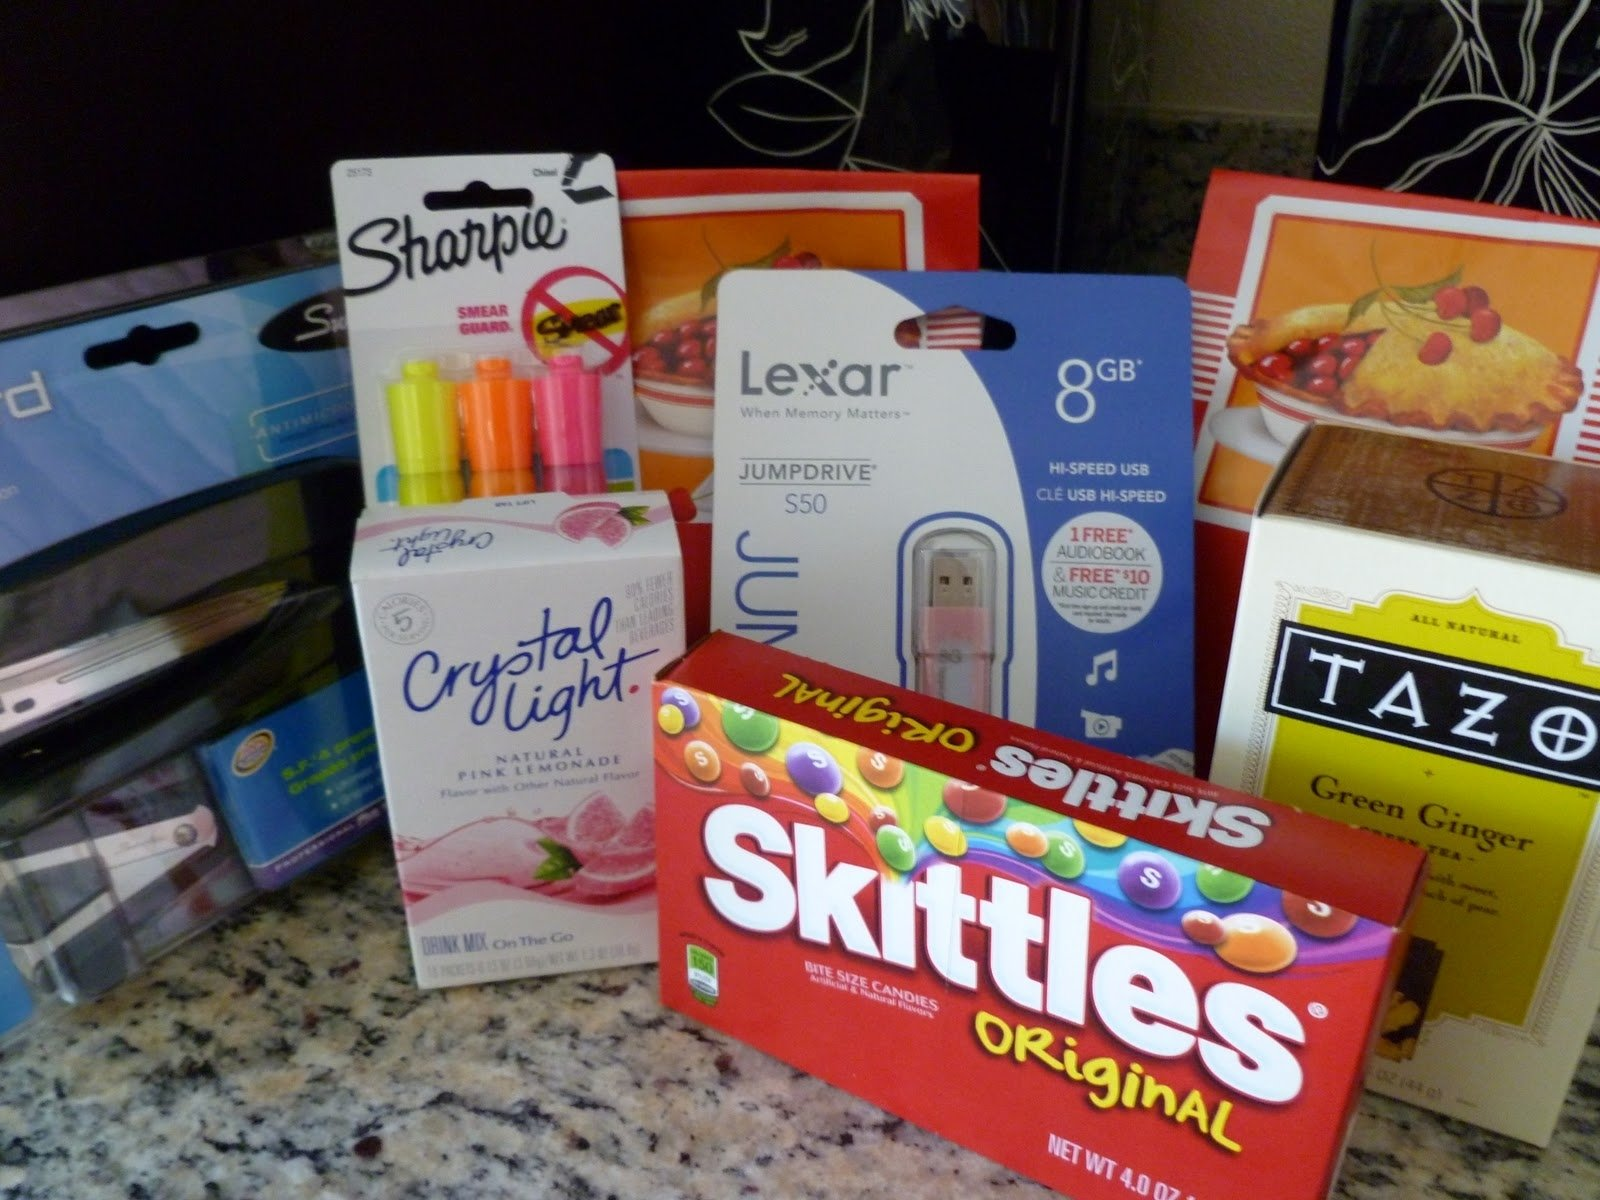 10 Fashionable Care Package Ideas For College Students advice for parents constructing the perfect care package 3